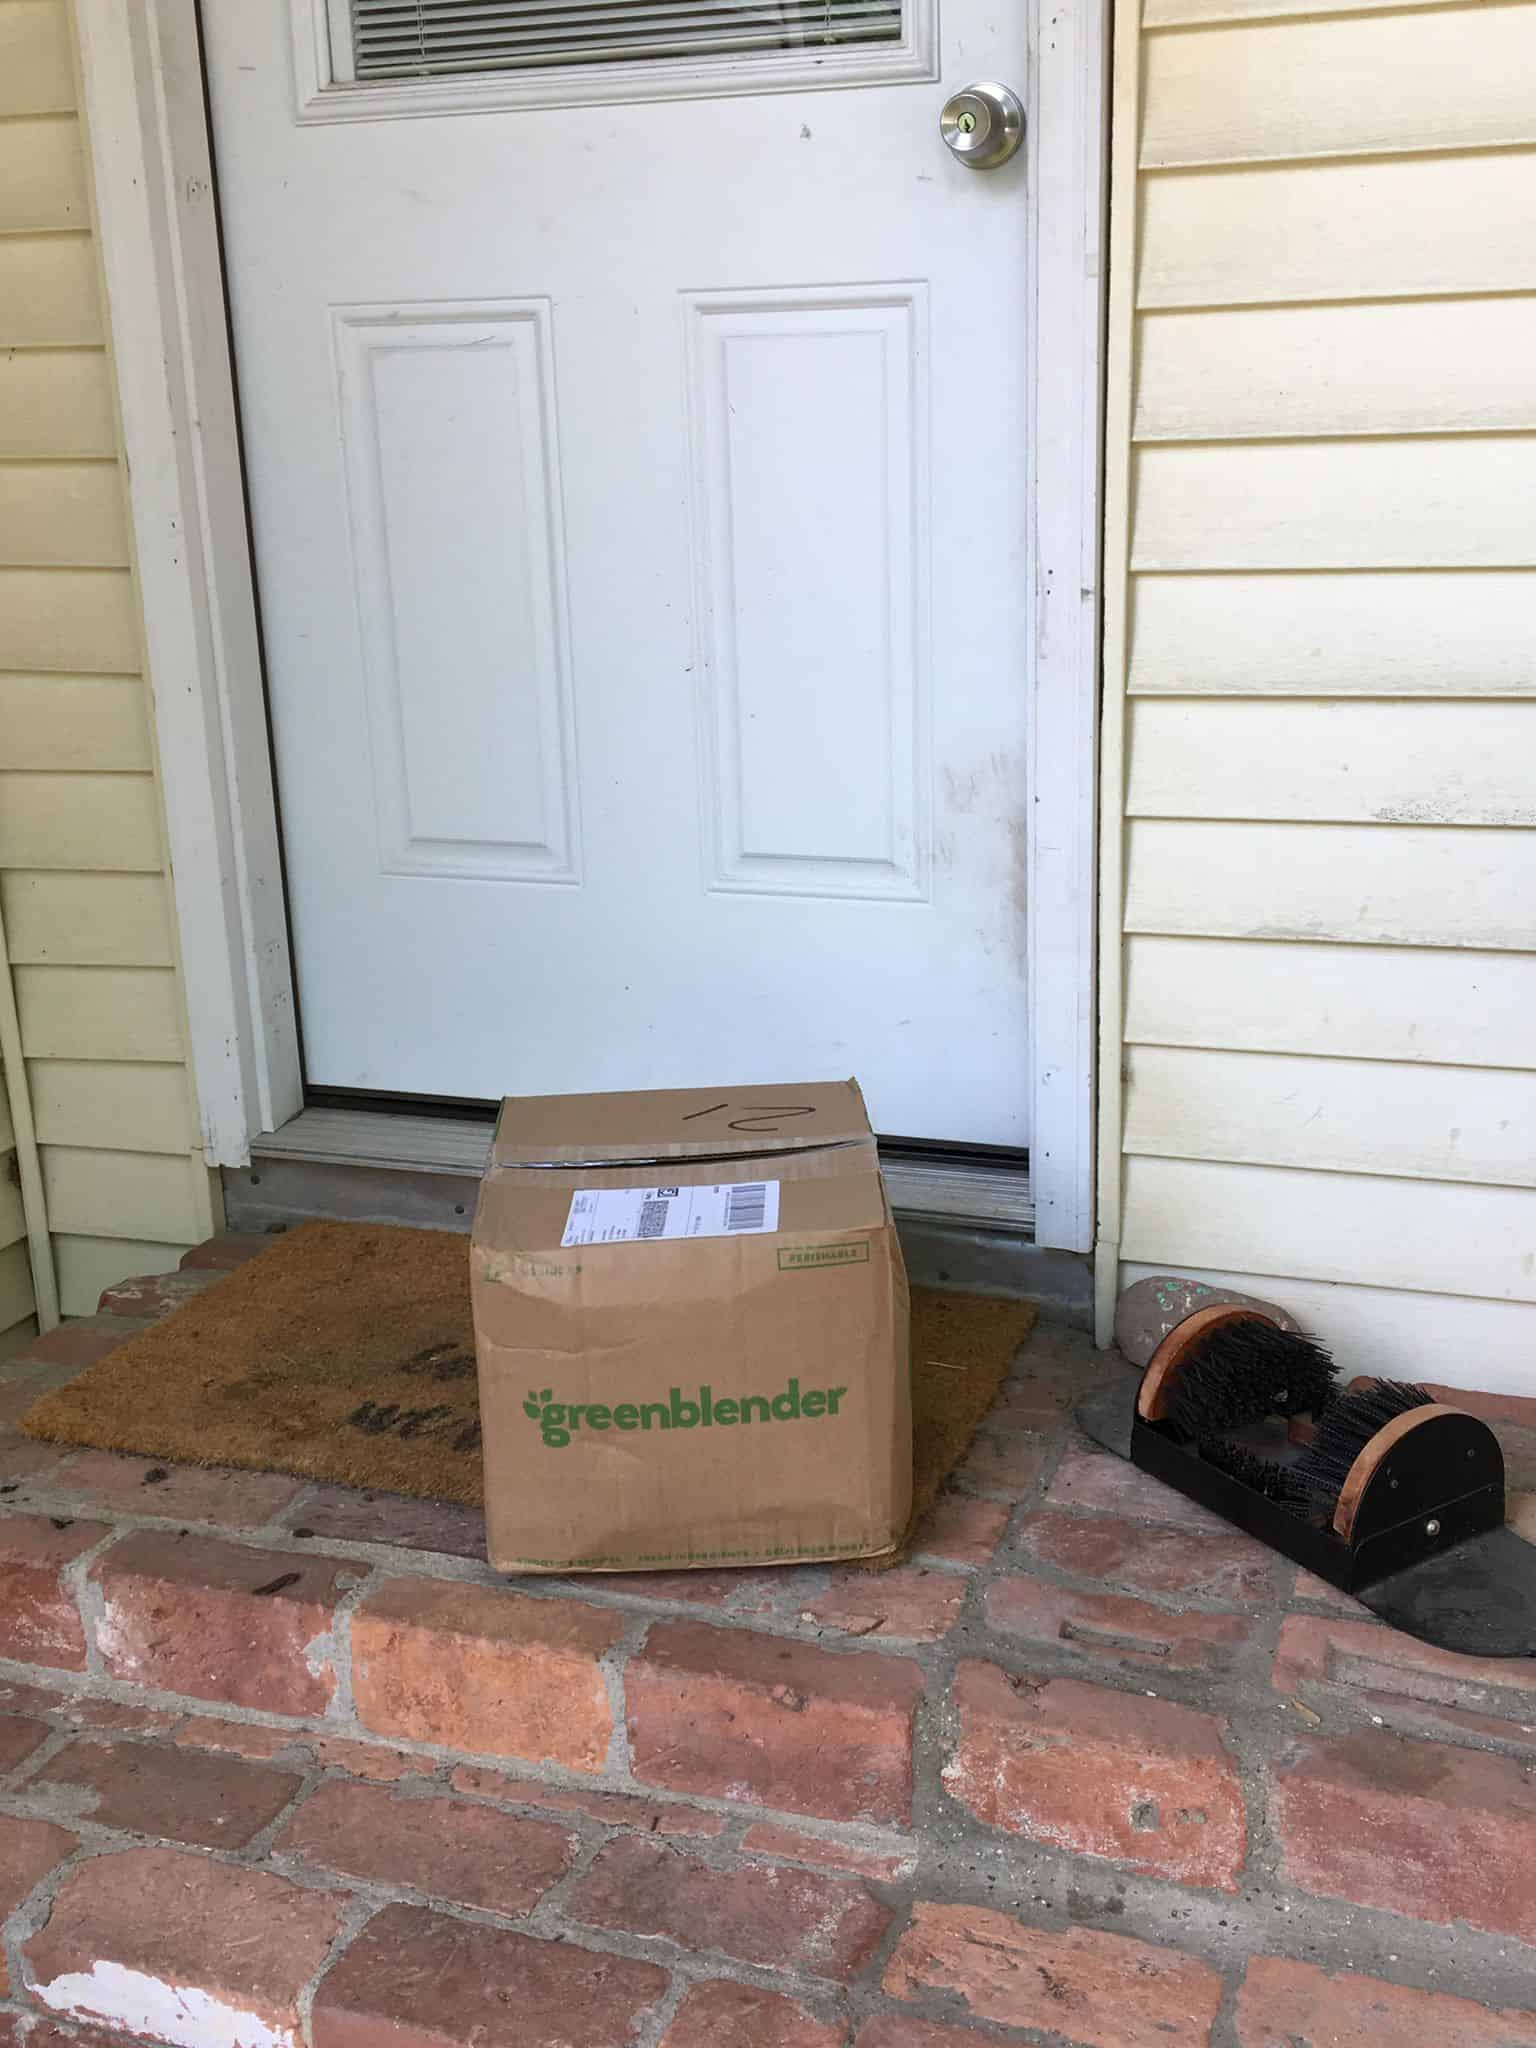 GreenBlender package in the doorstep.